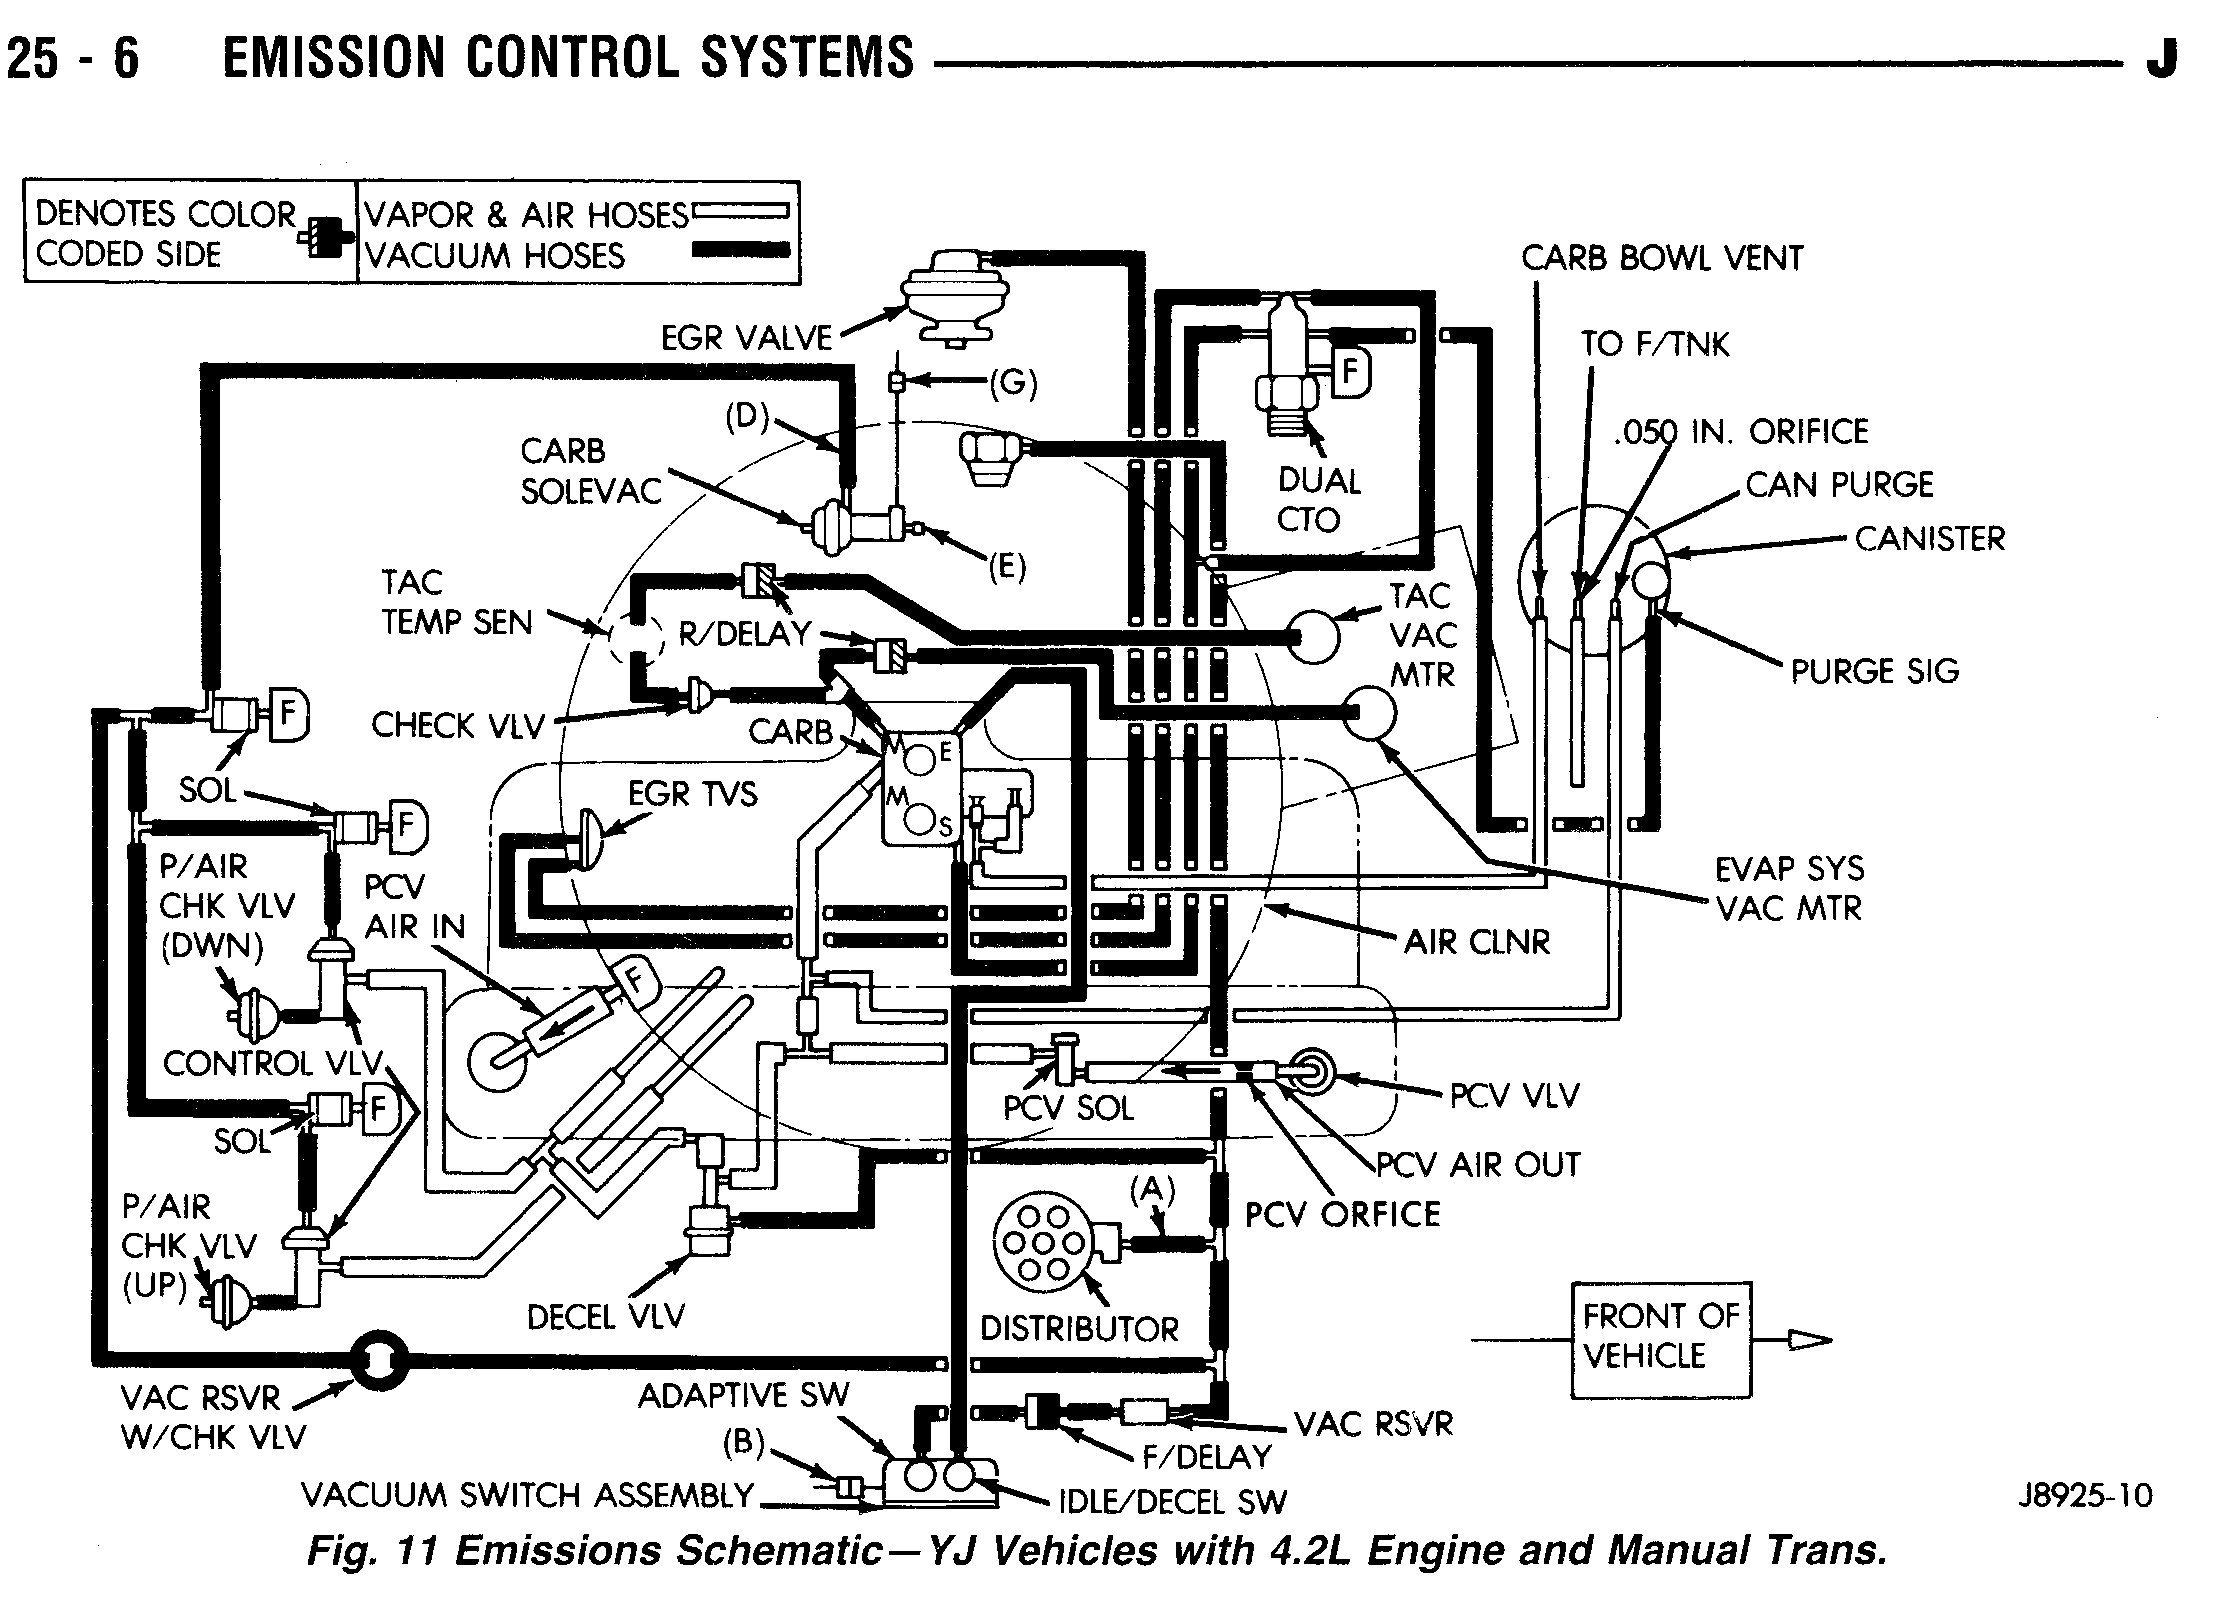 1990 yj 4.2l gross polluter running rich - jeepforum.com 1990 jeep wrangler wiring diagram #14